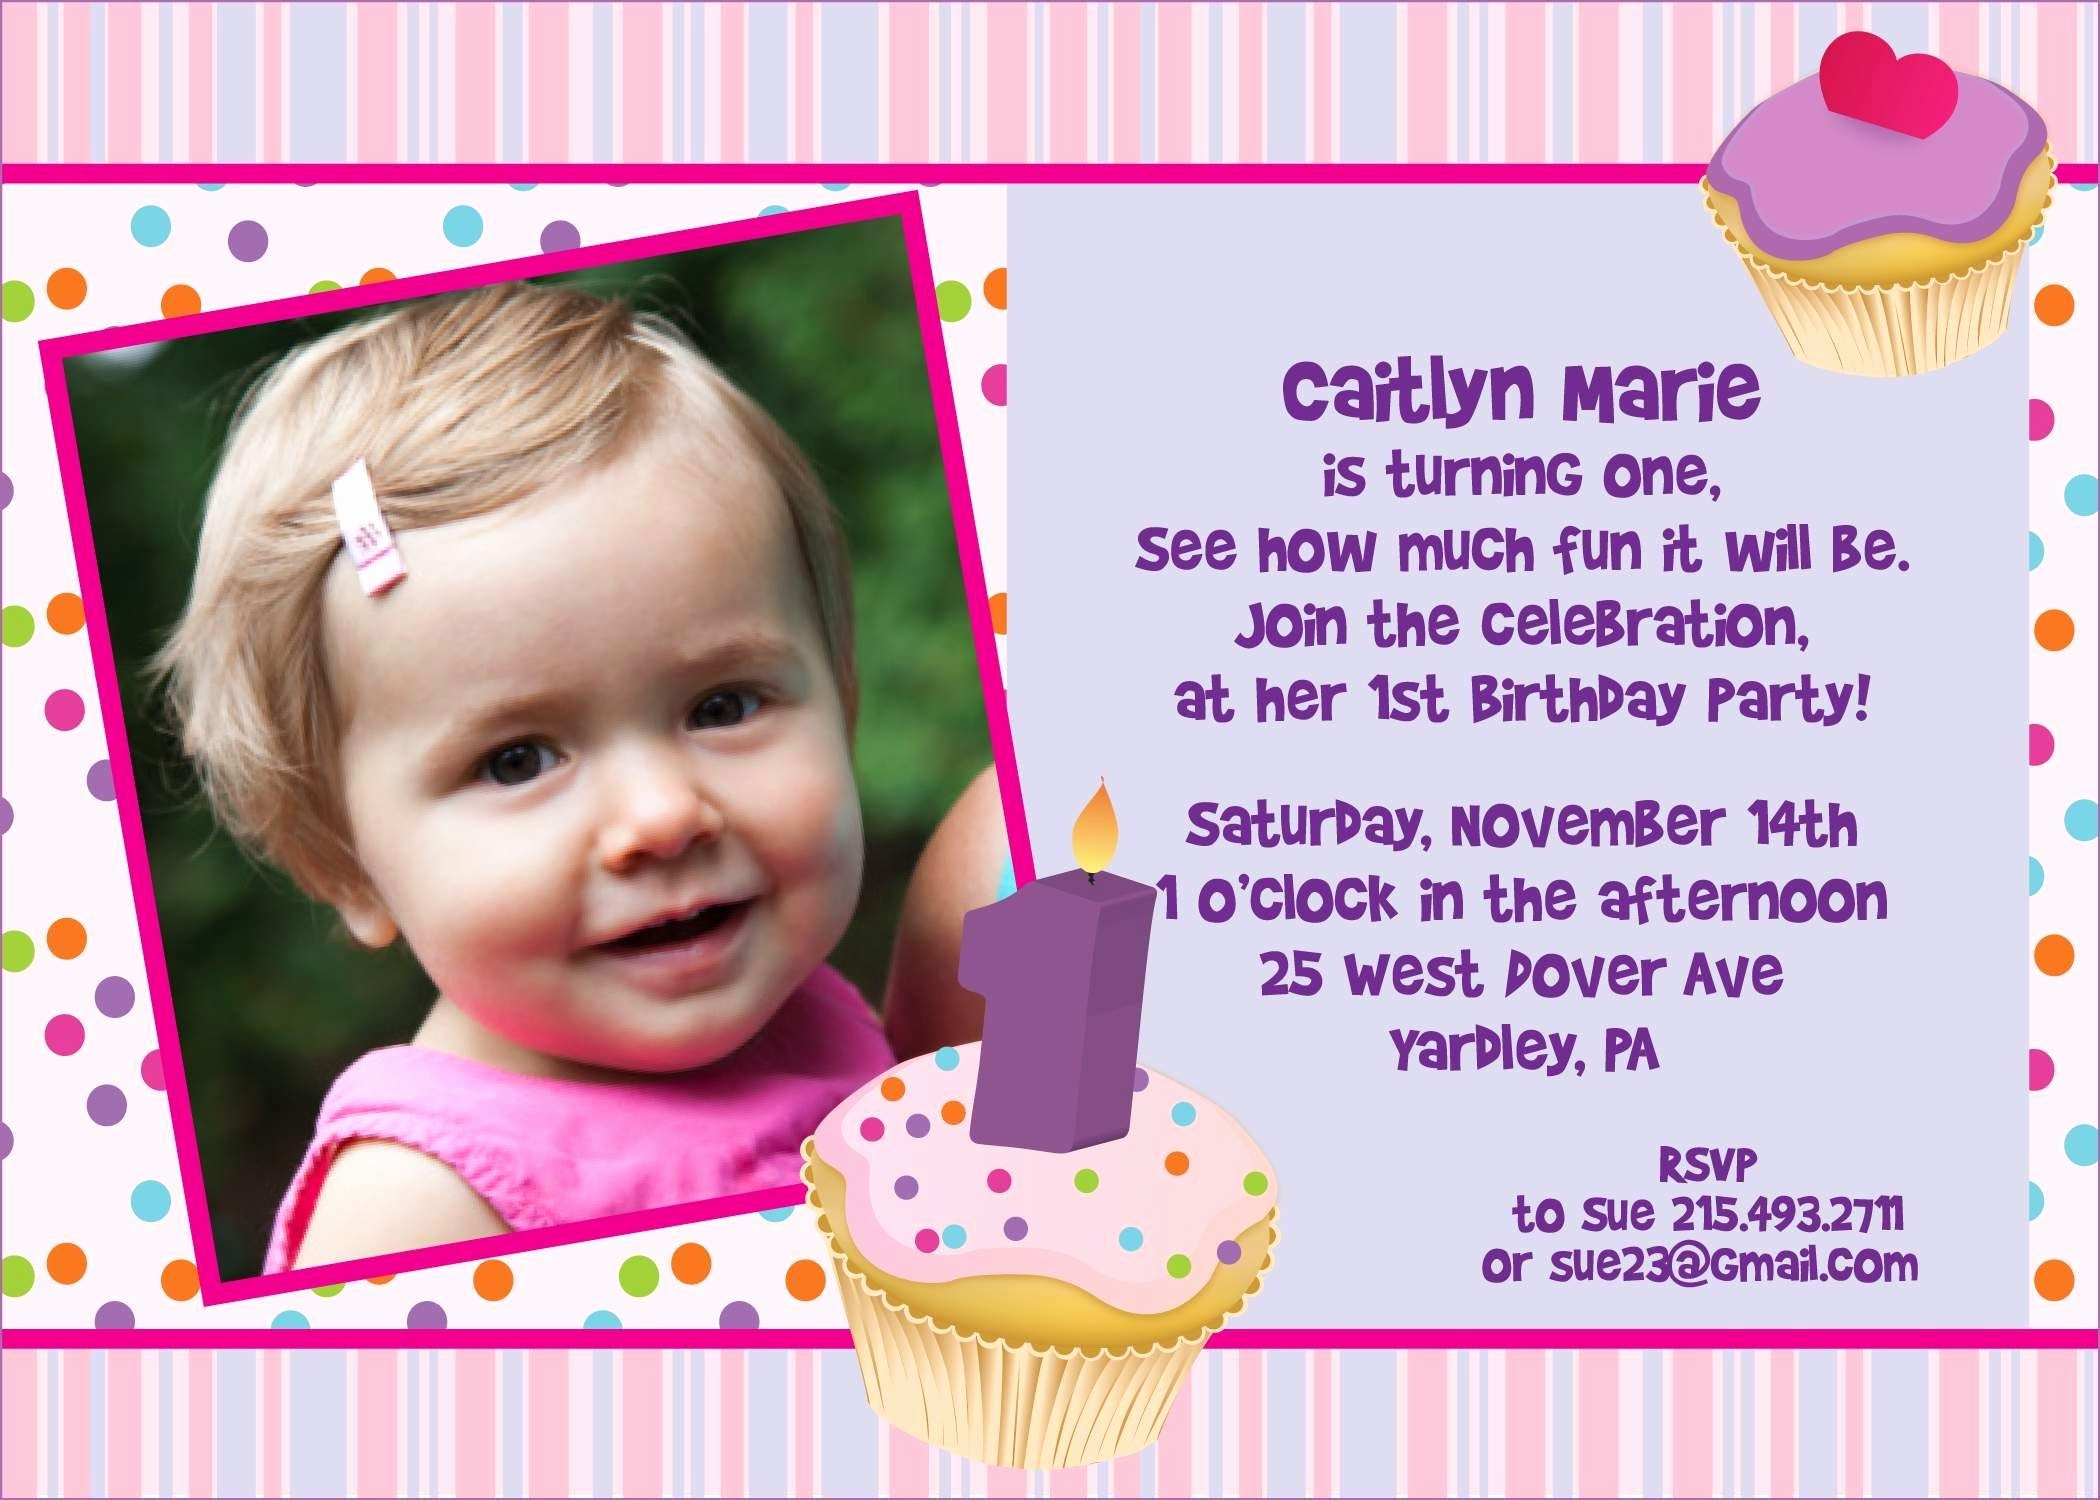 Birthday Invitation Card Sample Lovely Birthday Card Invitation Sample